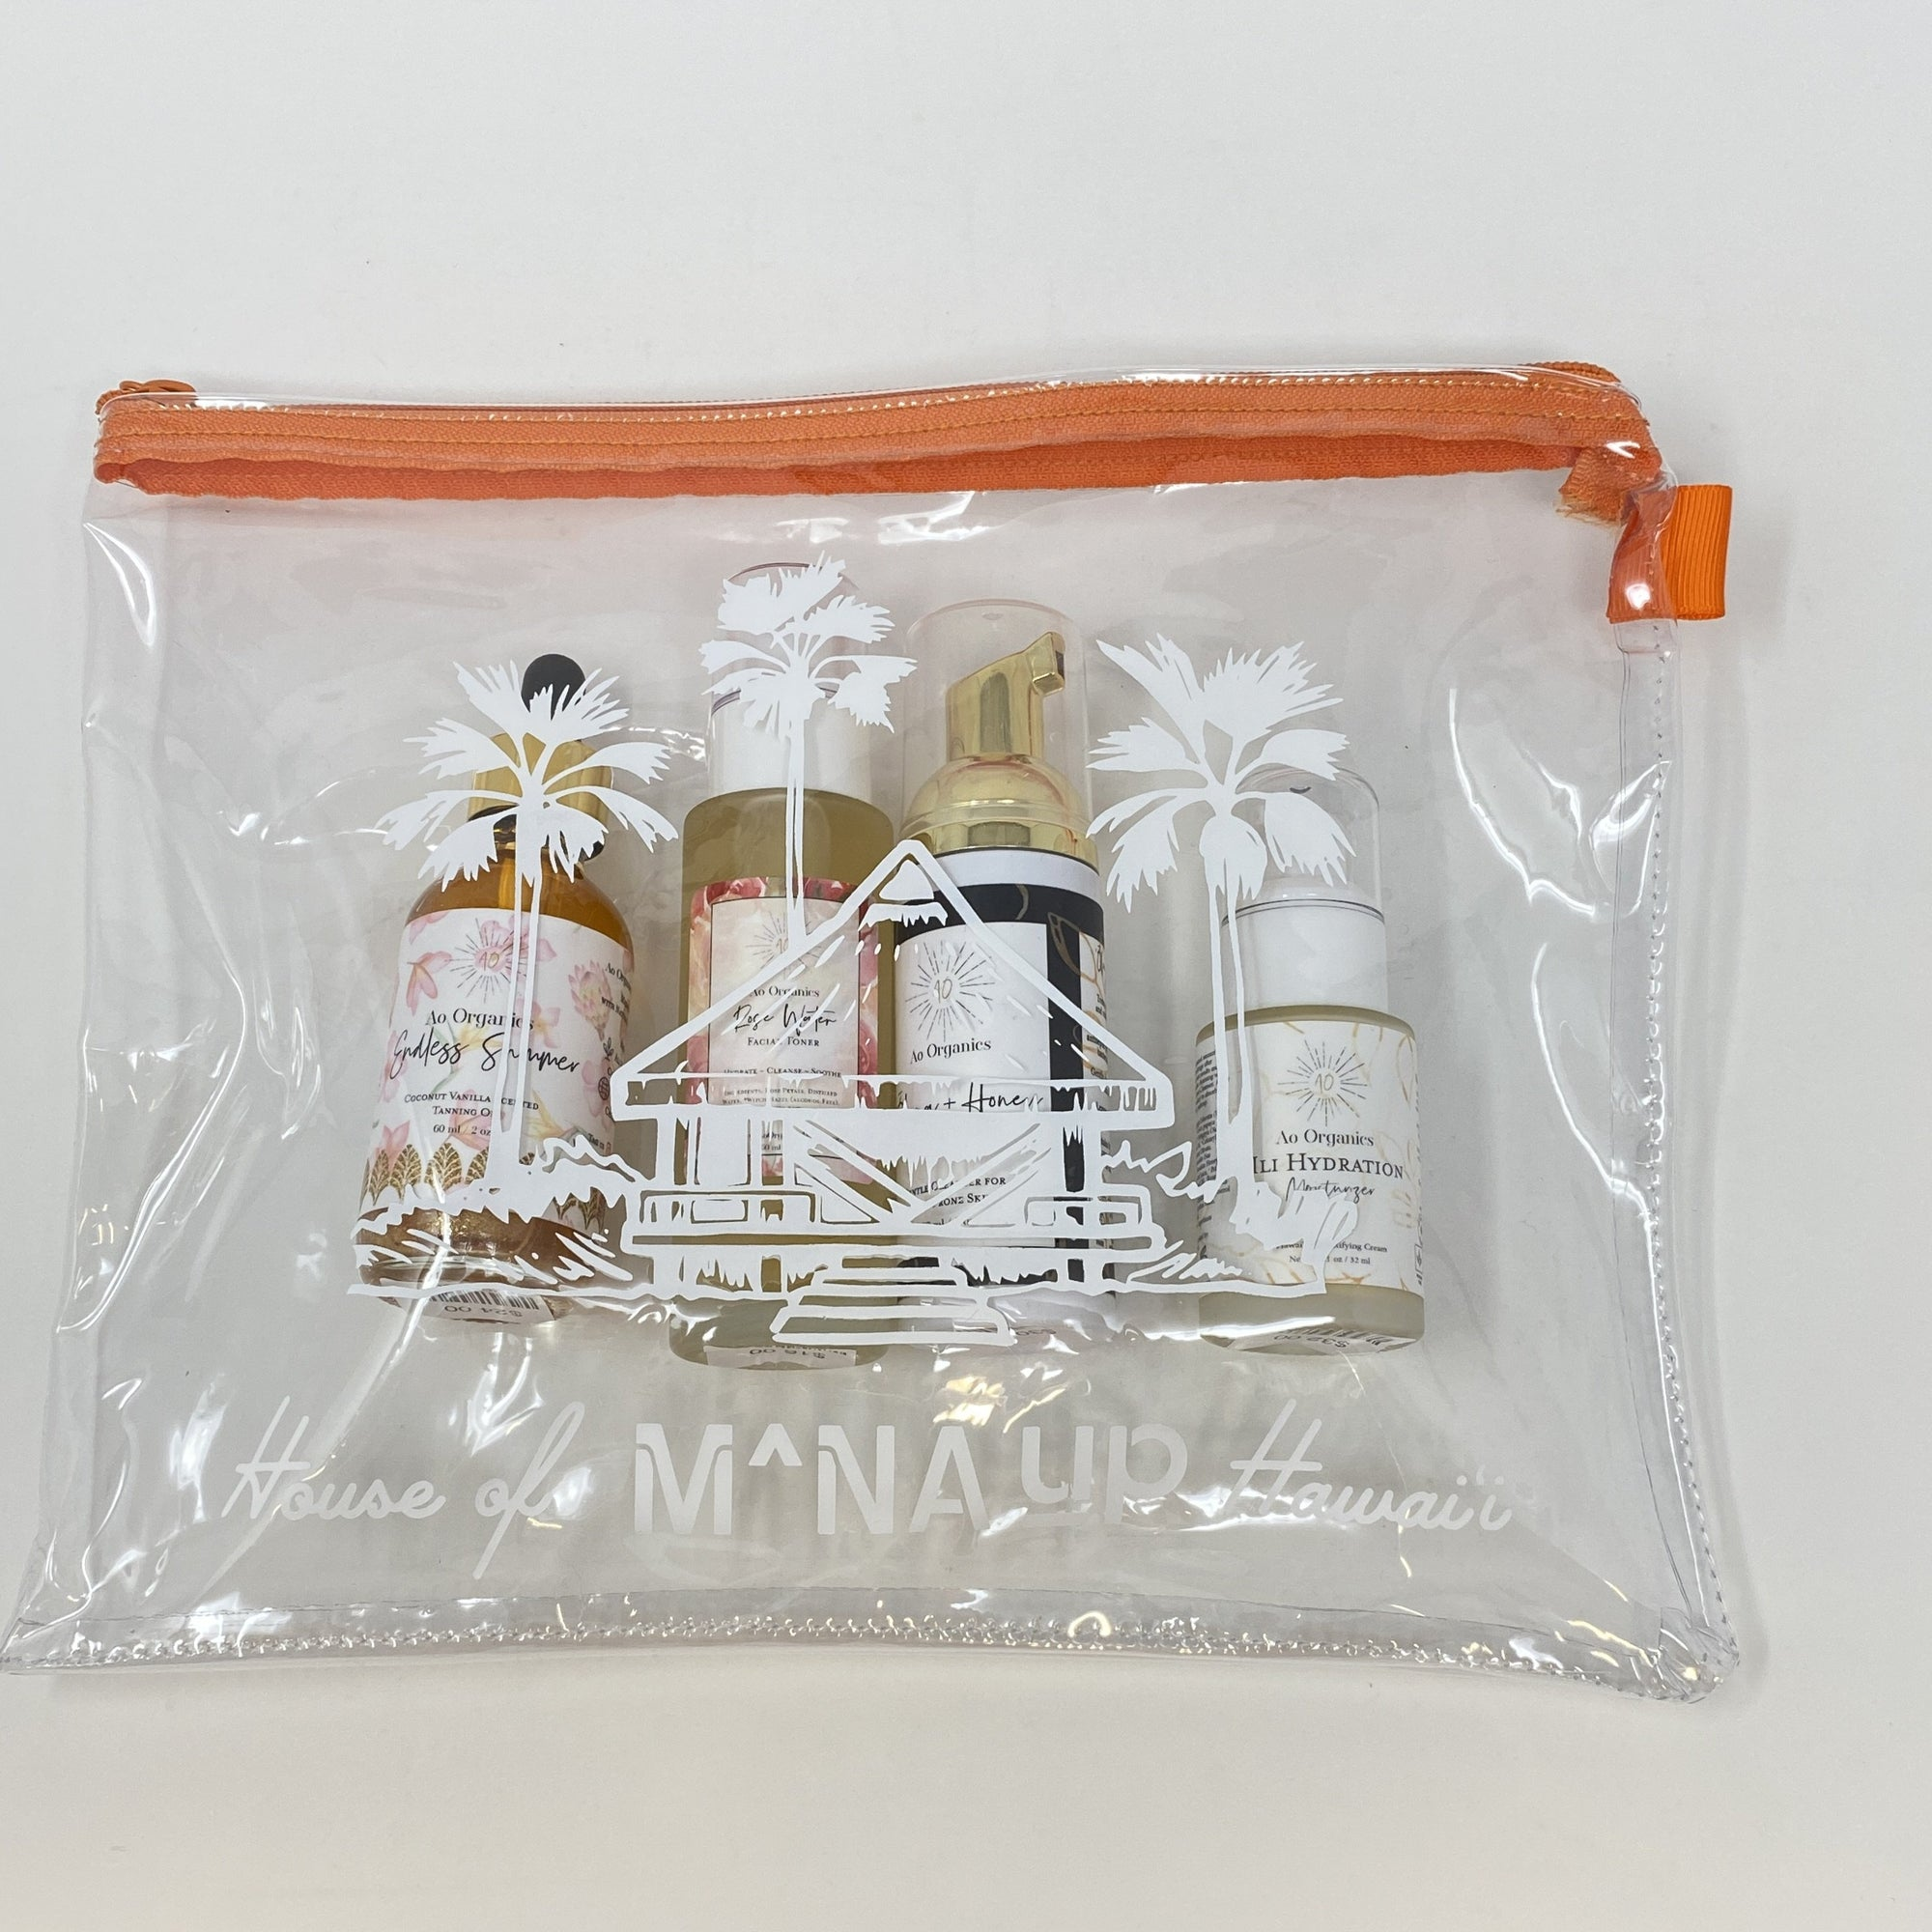 Ka'ilihiwa Ao Organics Pouch Set - Black Friday Special 30% off